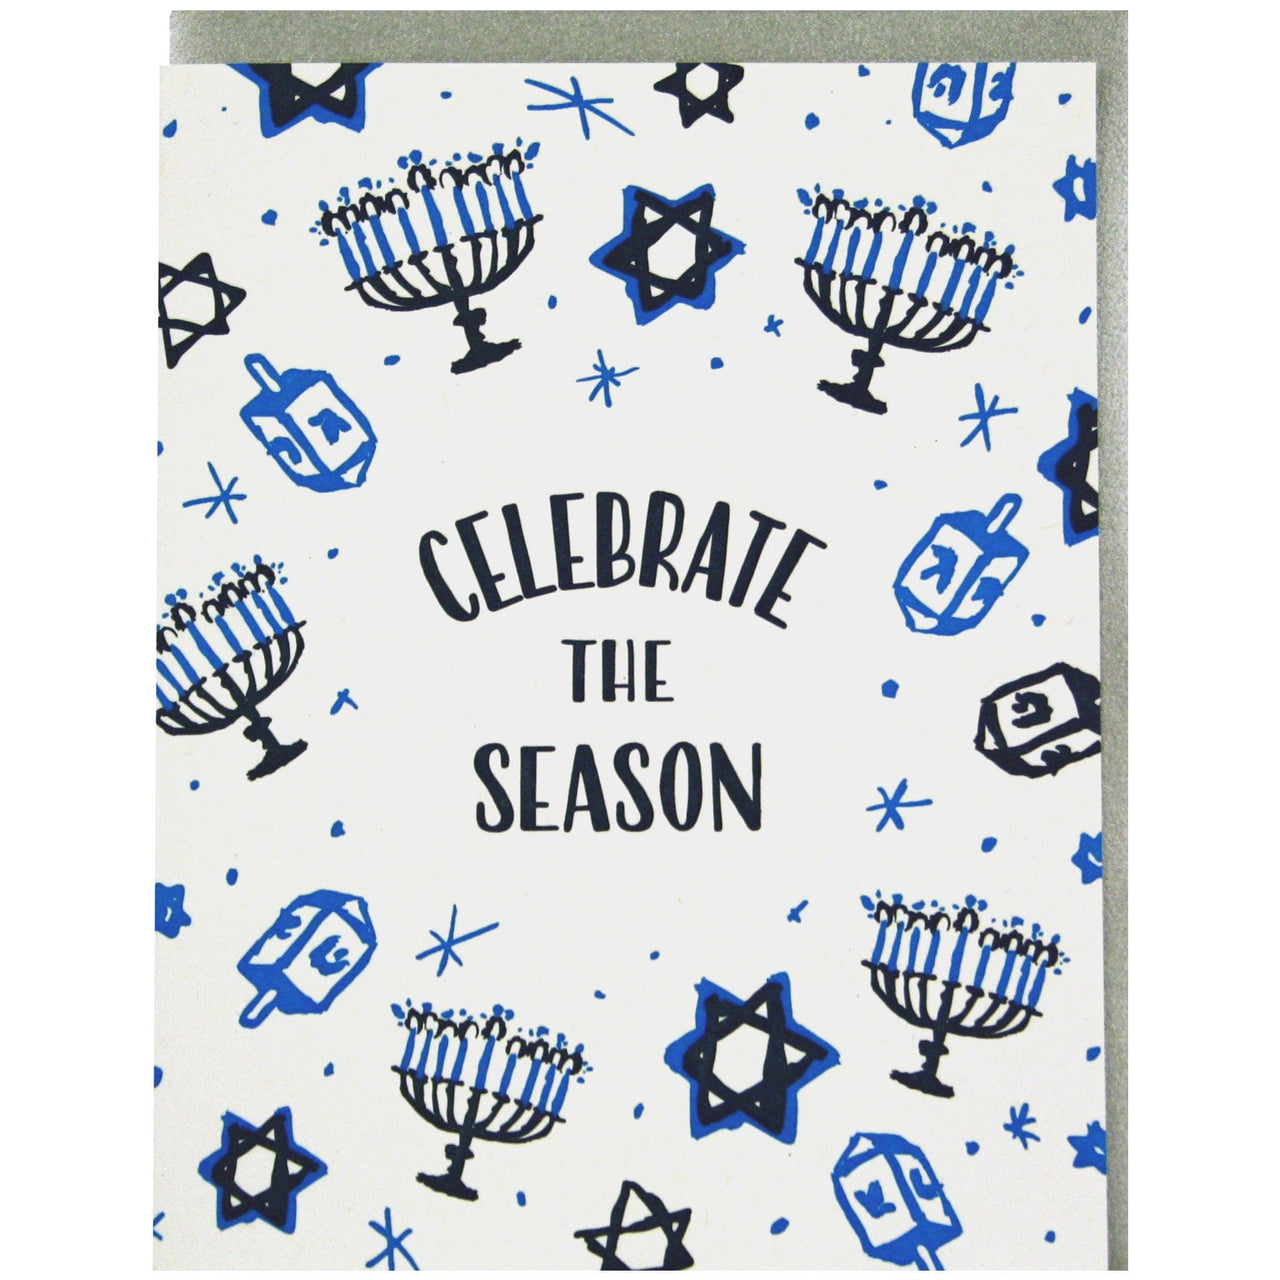 Celebrate the Season Hanukkah Card